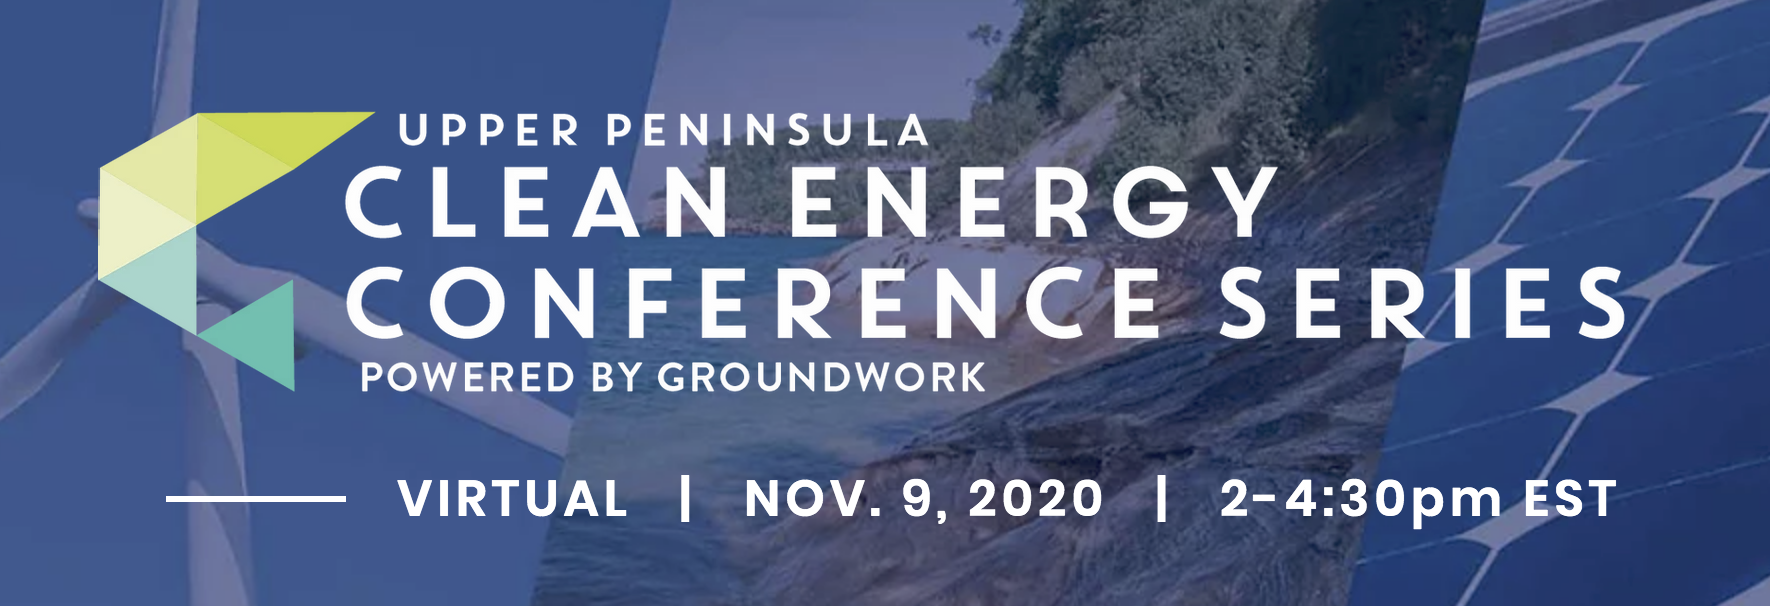 UP Energy Conference